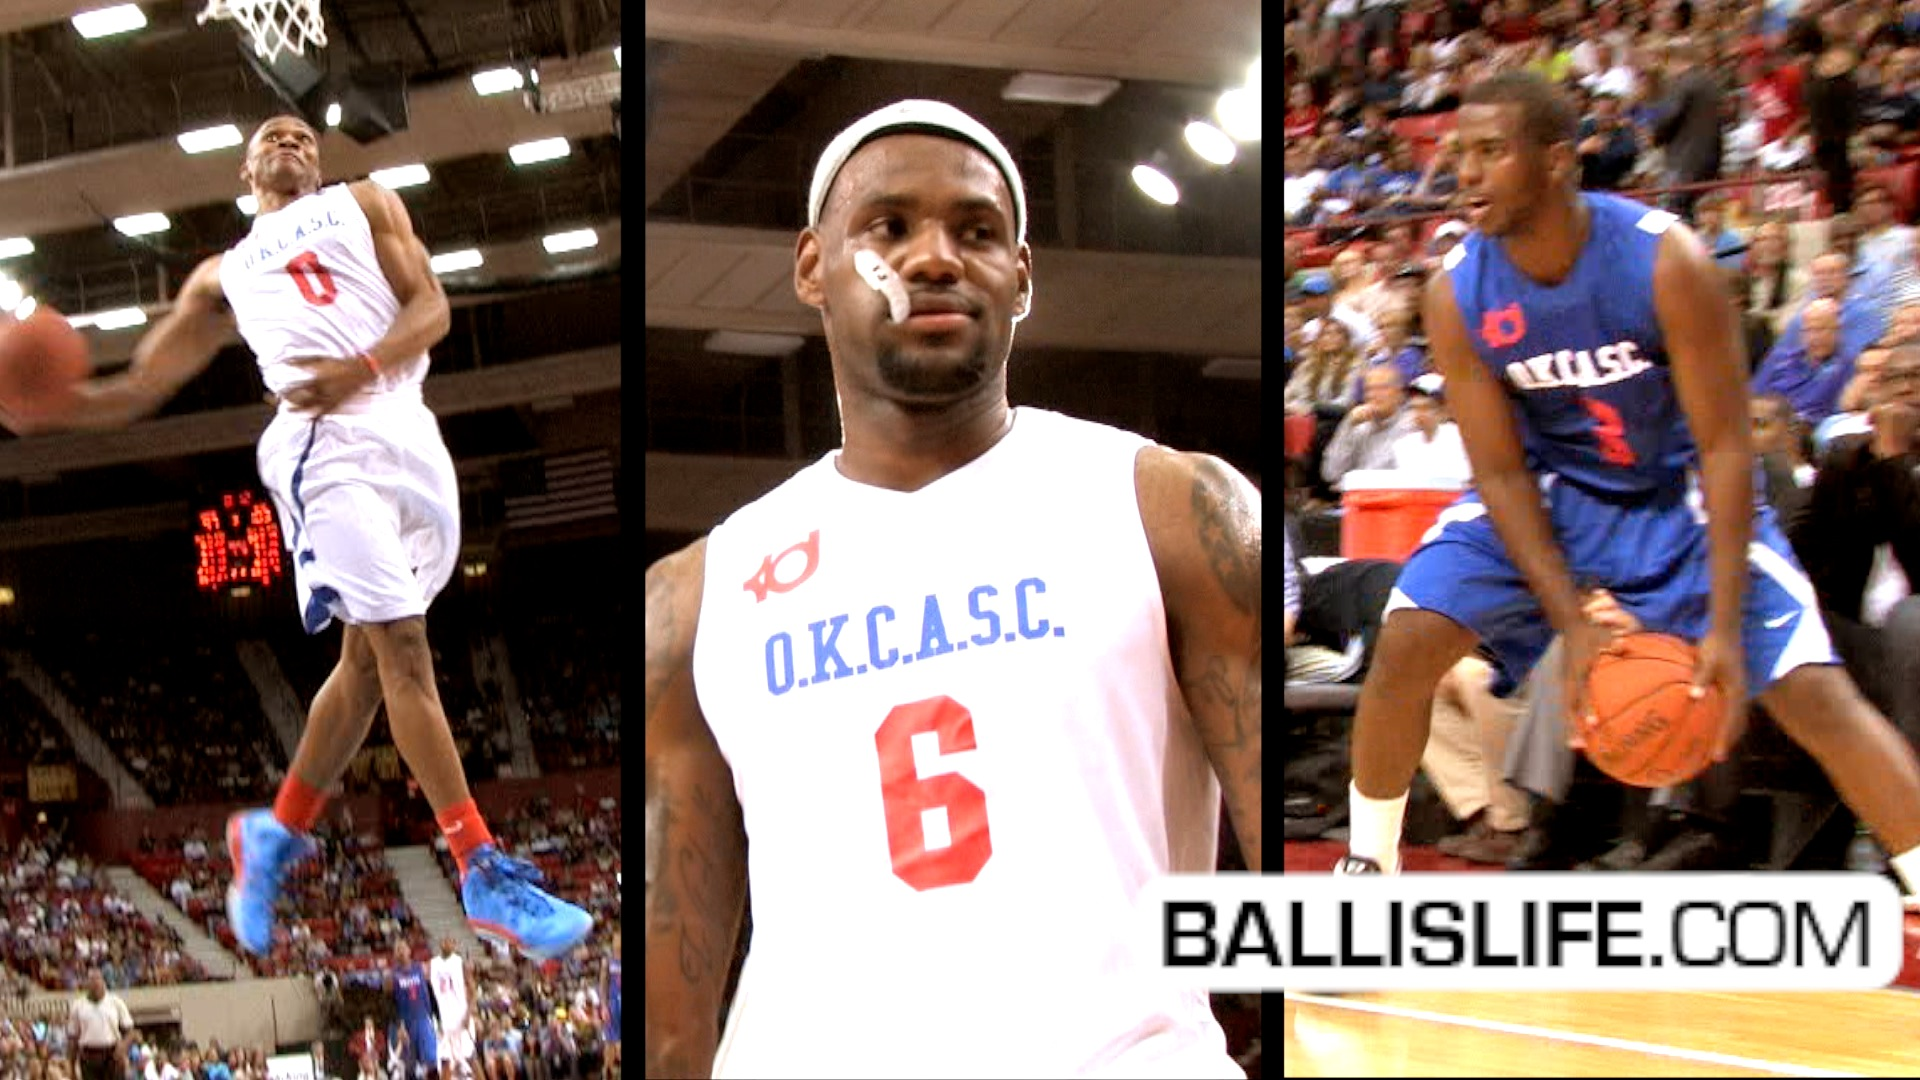 Ballislife | Westbrook, LBJ, and CP3 at OKC in NBA Lockout